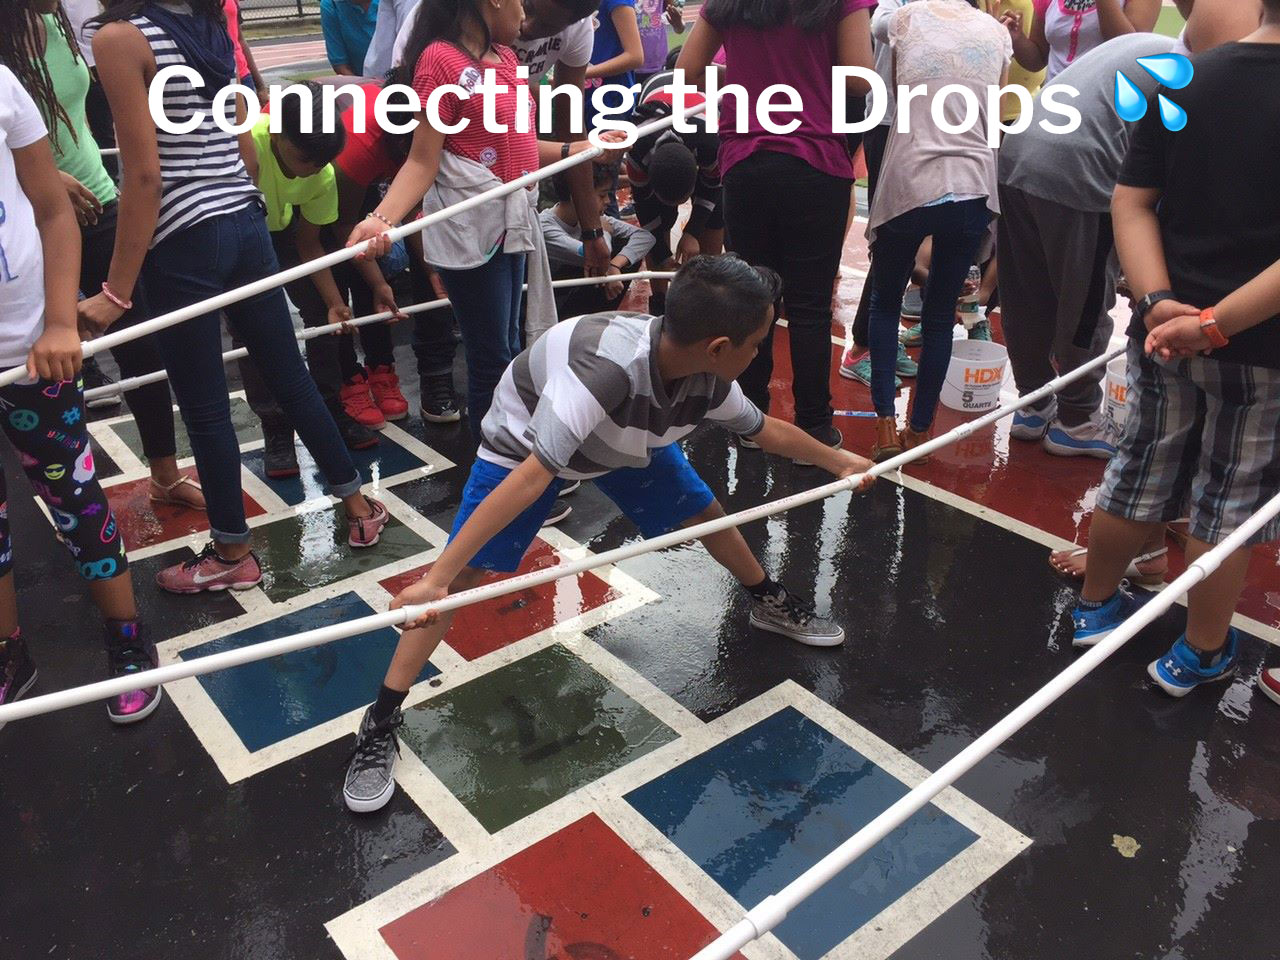 connecting the drops, corporate social responsibility educational program on sustainability